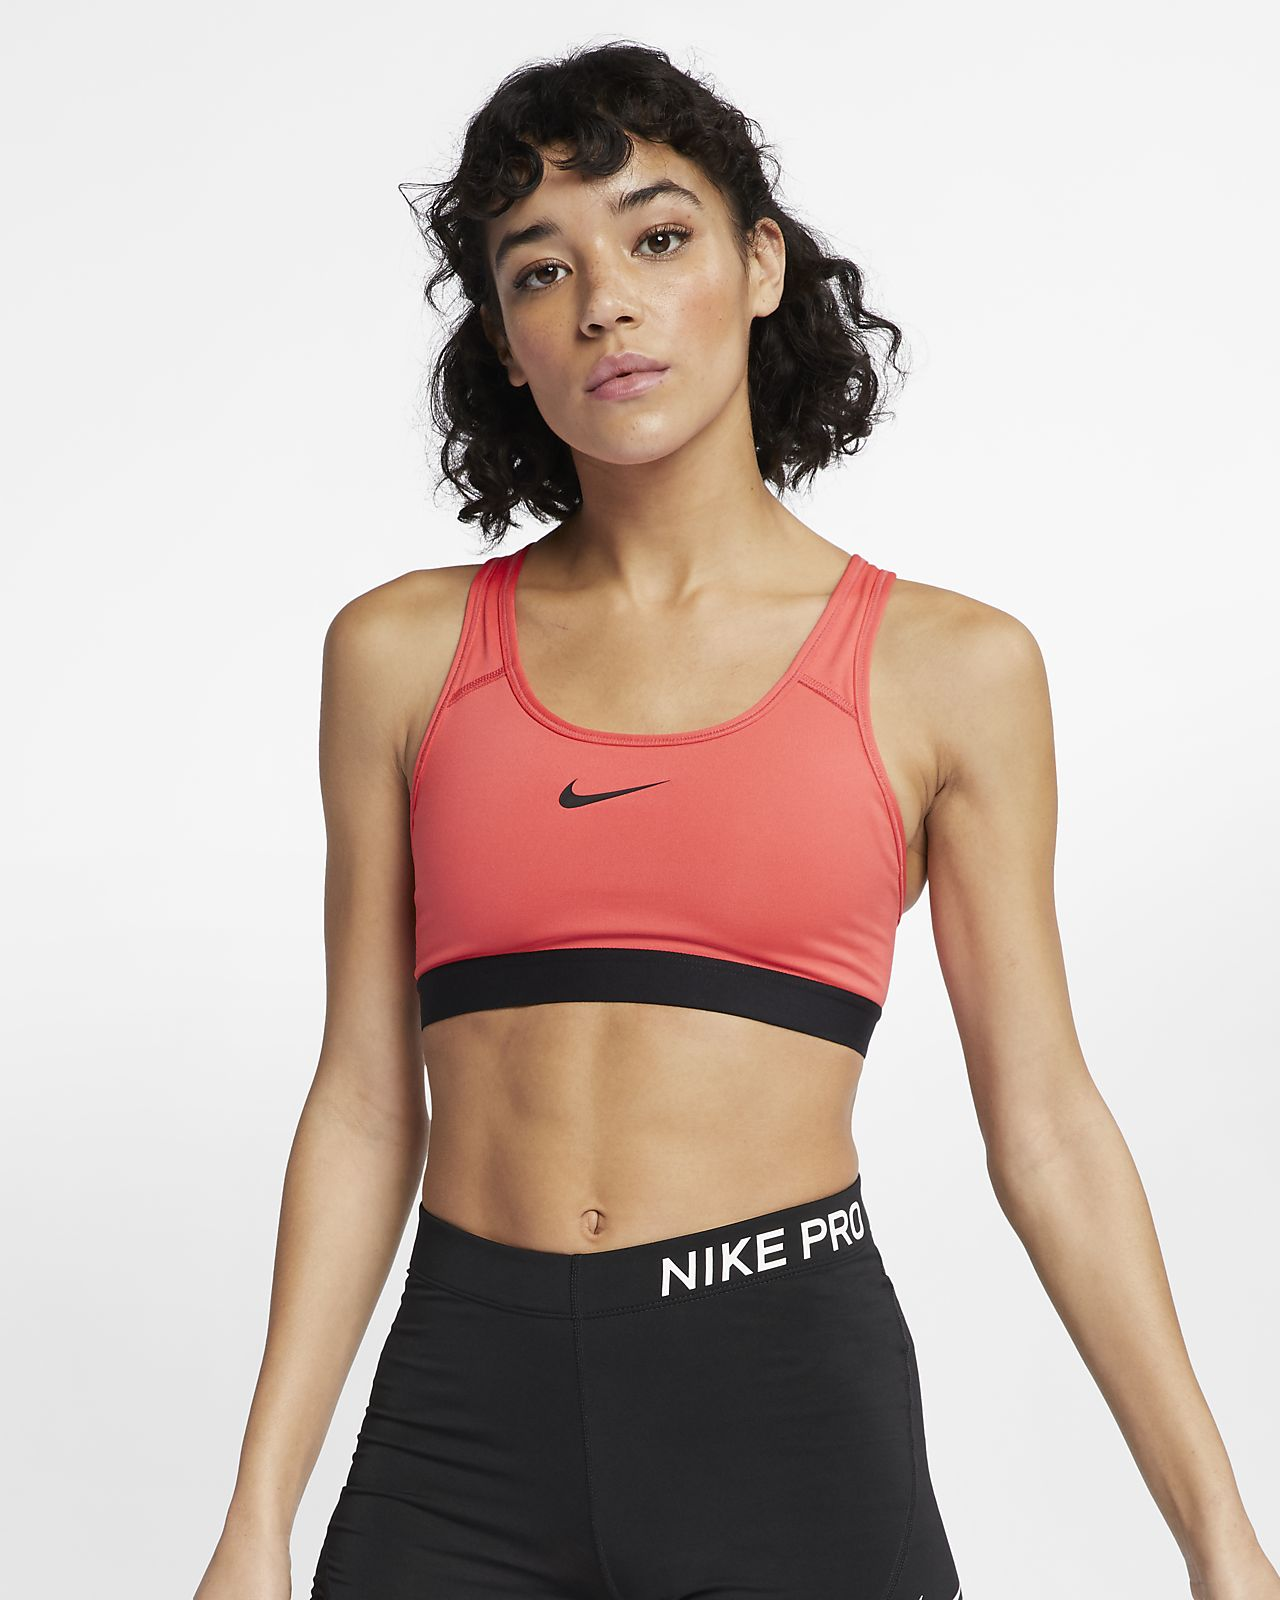 d9712a7f7f Nike Classic Padded Women s Medium-Support Sports Bra. Nike.com